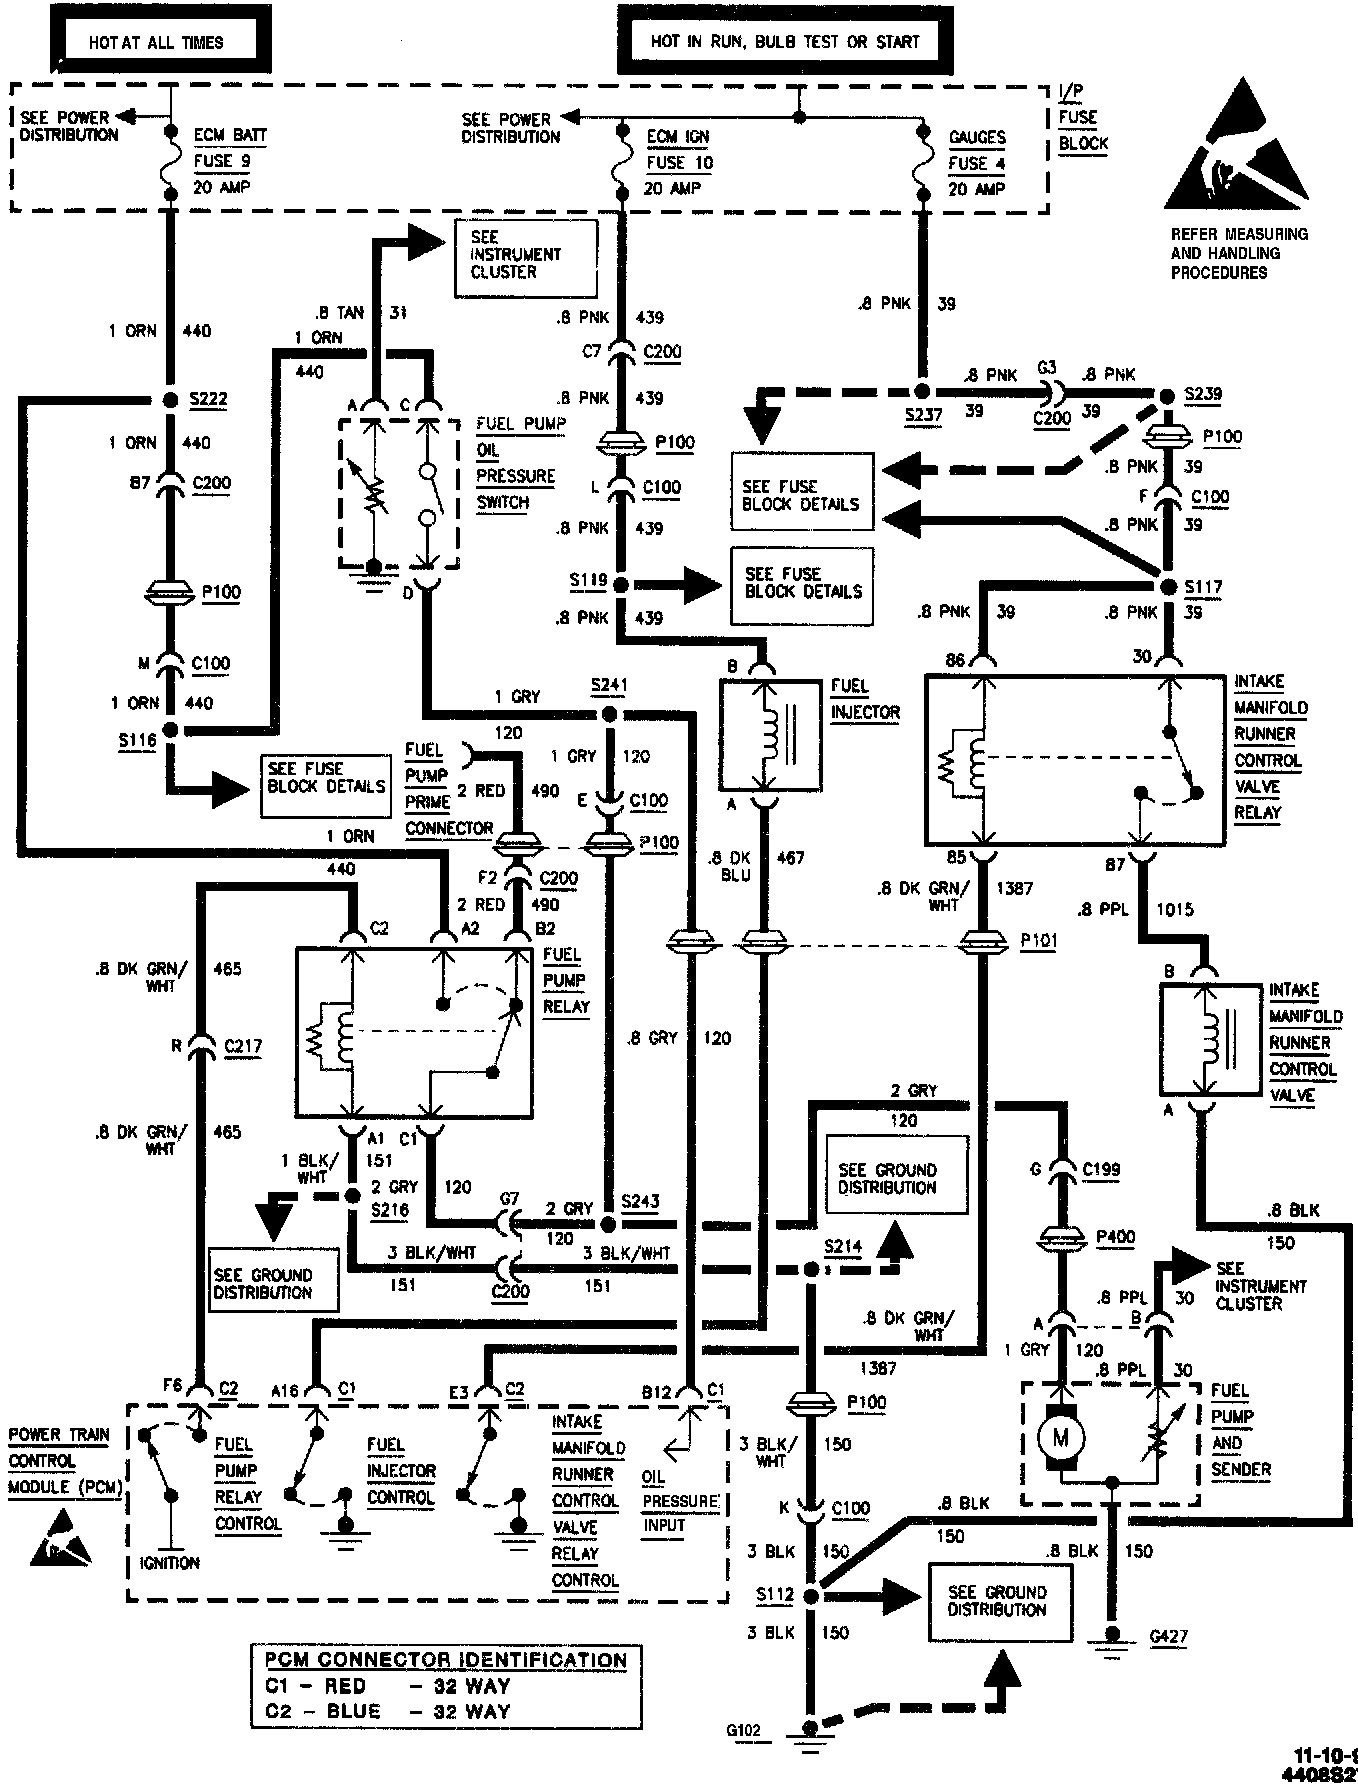 Wiring Diagram 81 Honda Cx500